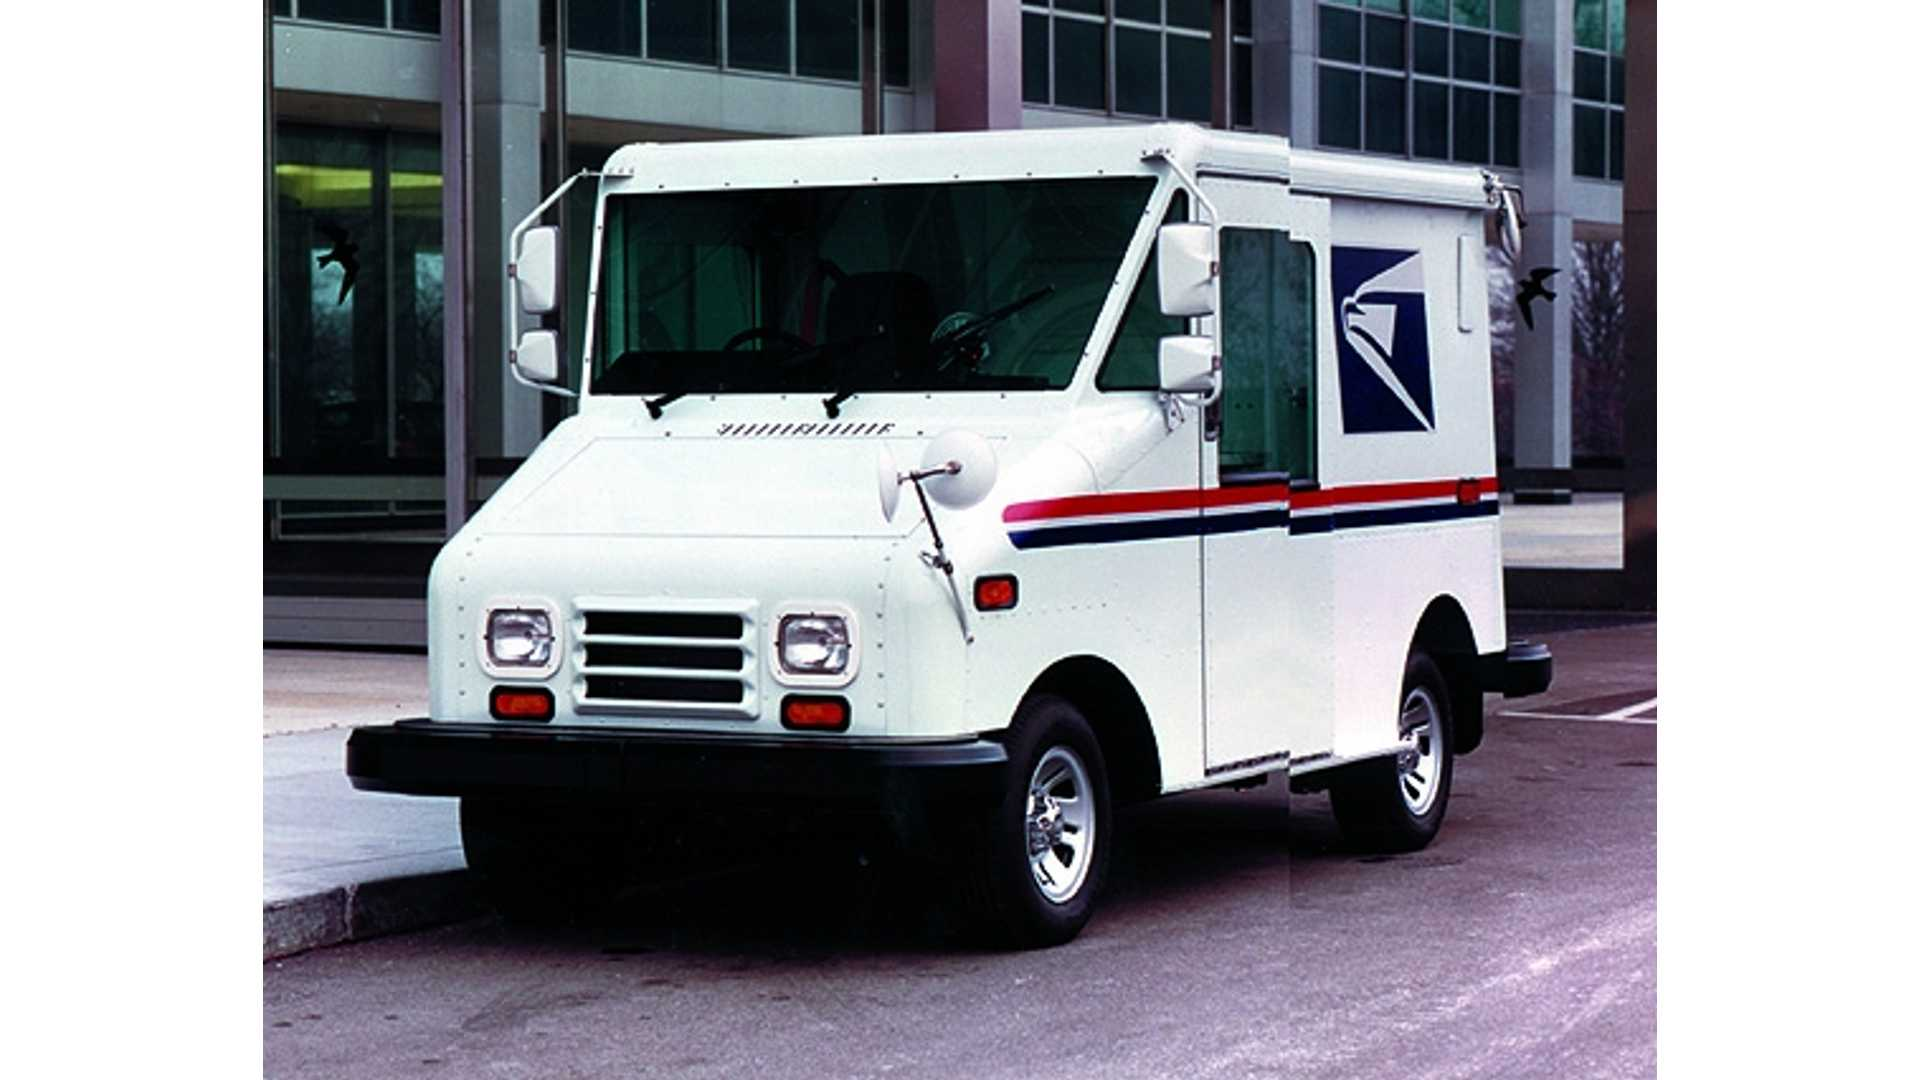 Should the US Postal Service Fleet go Electric?